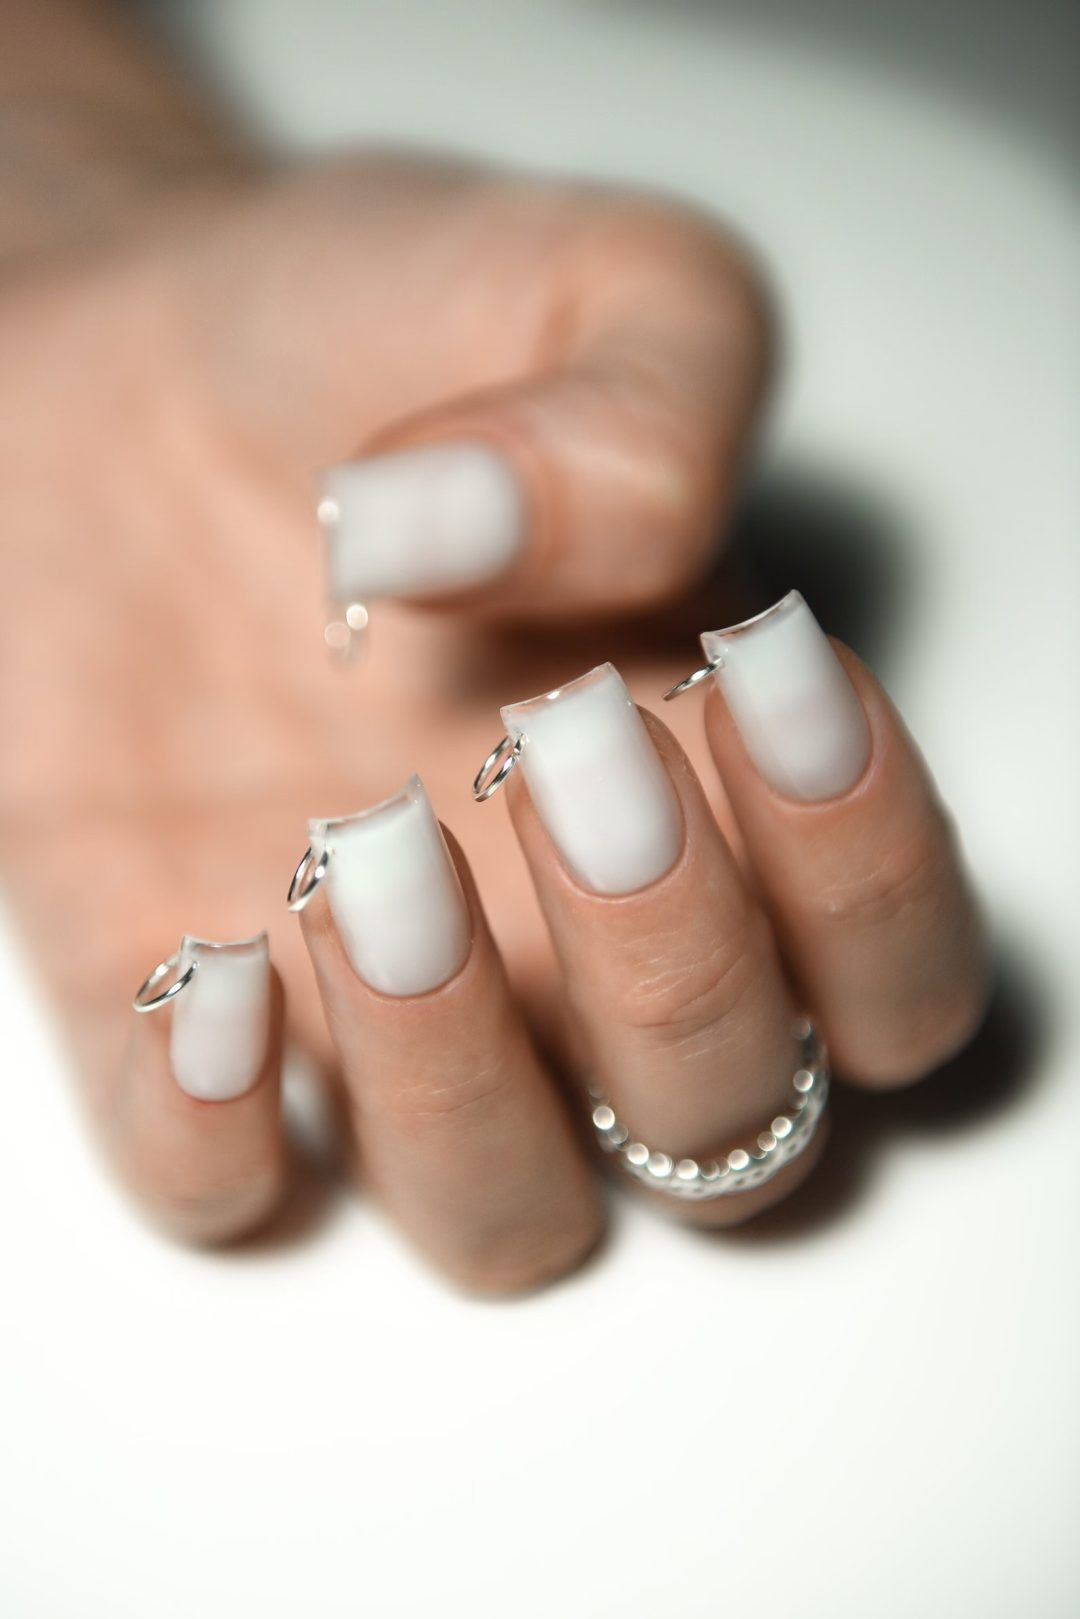 White square nails with silver pierce